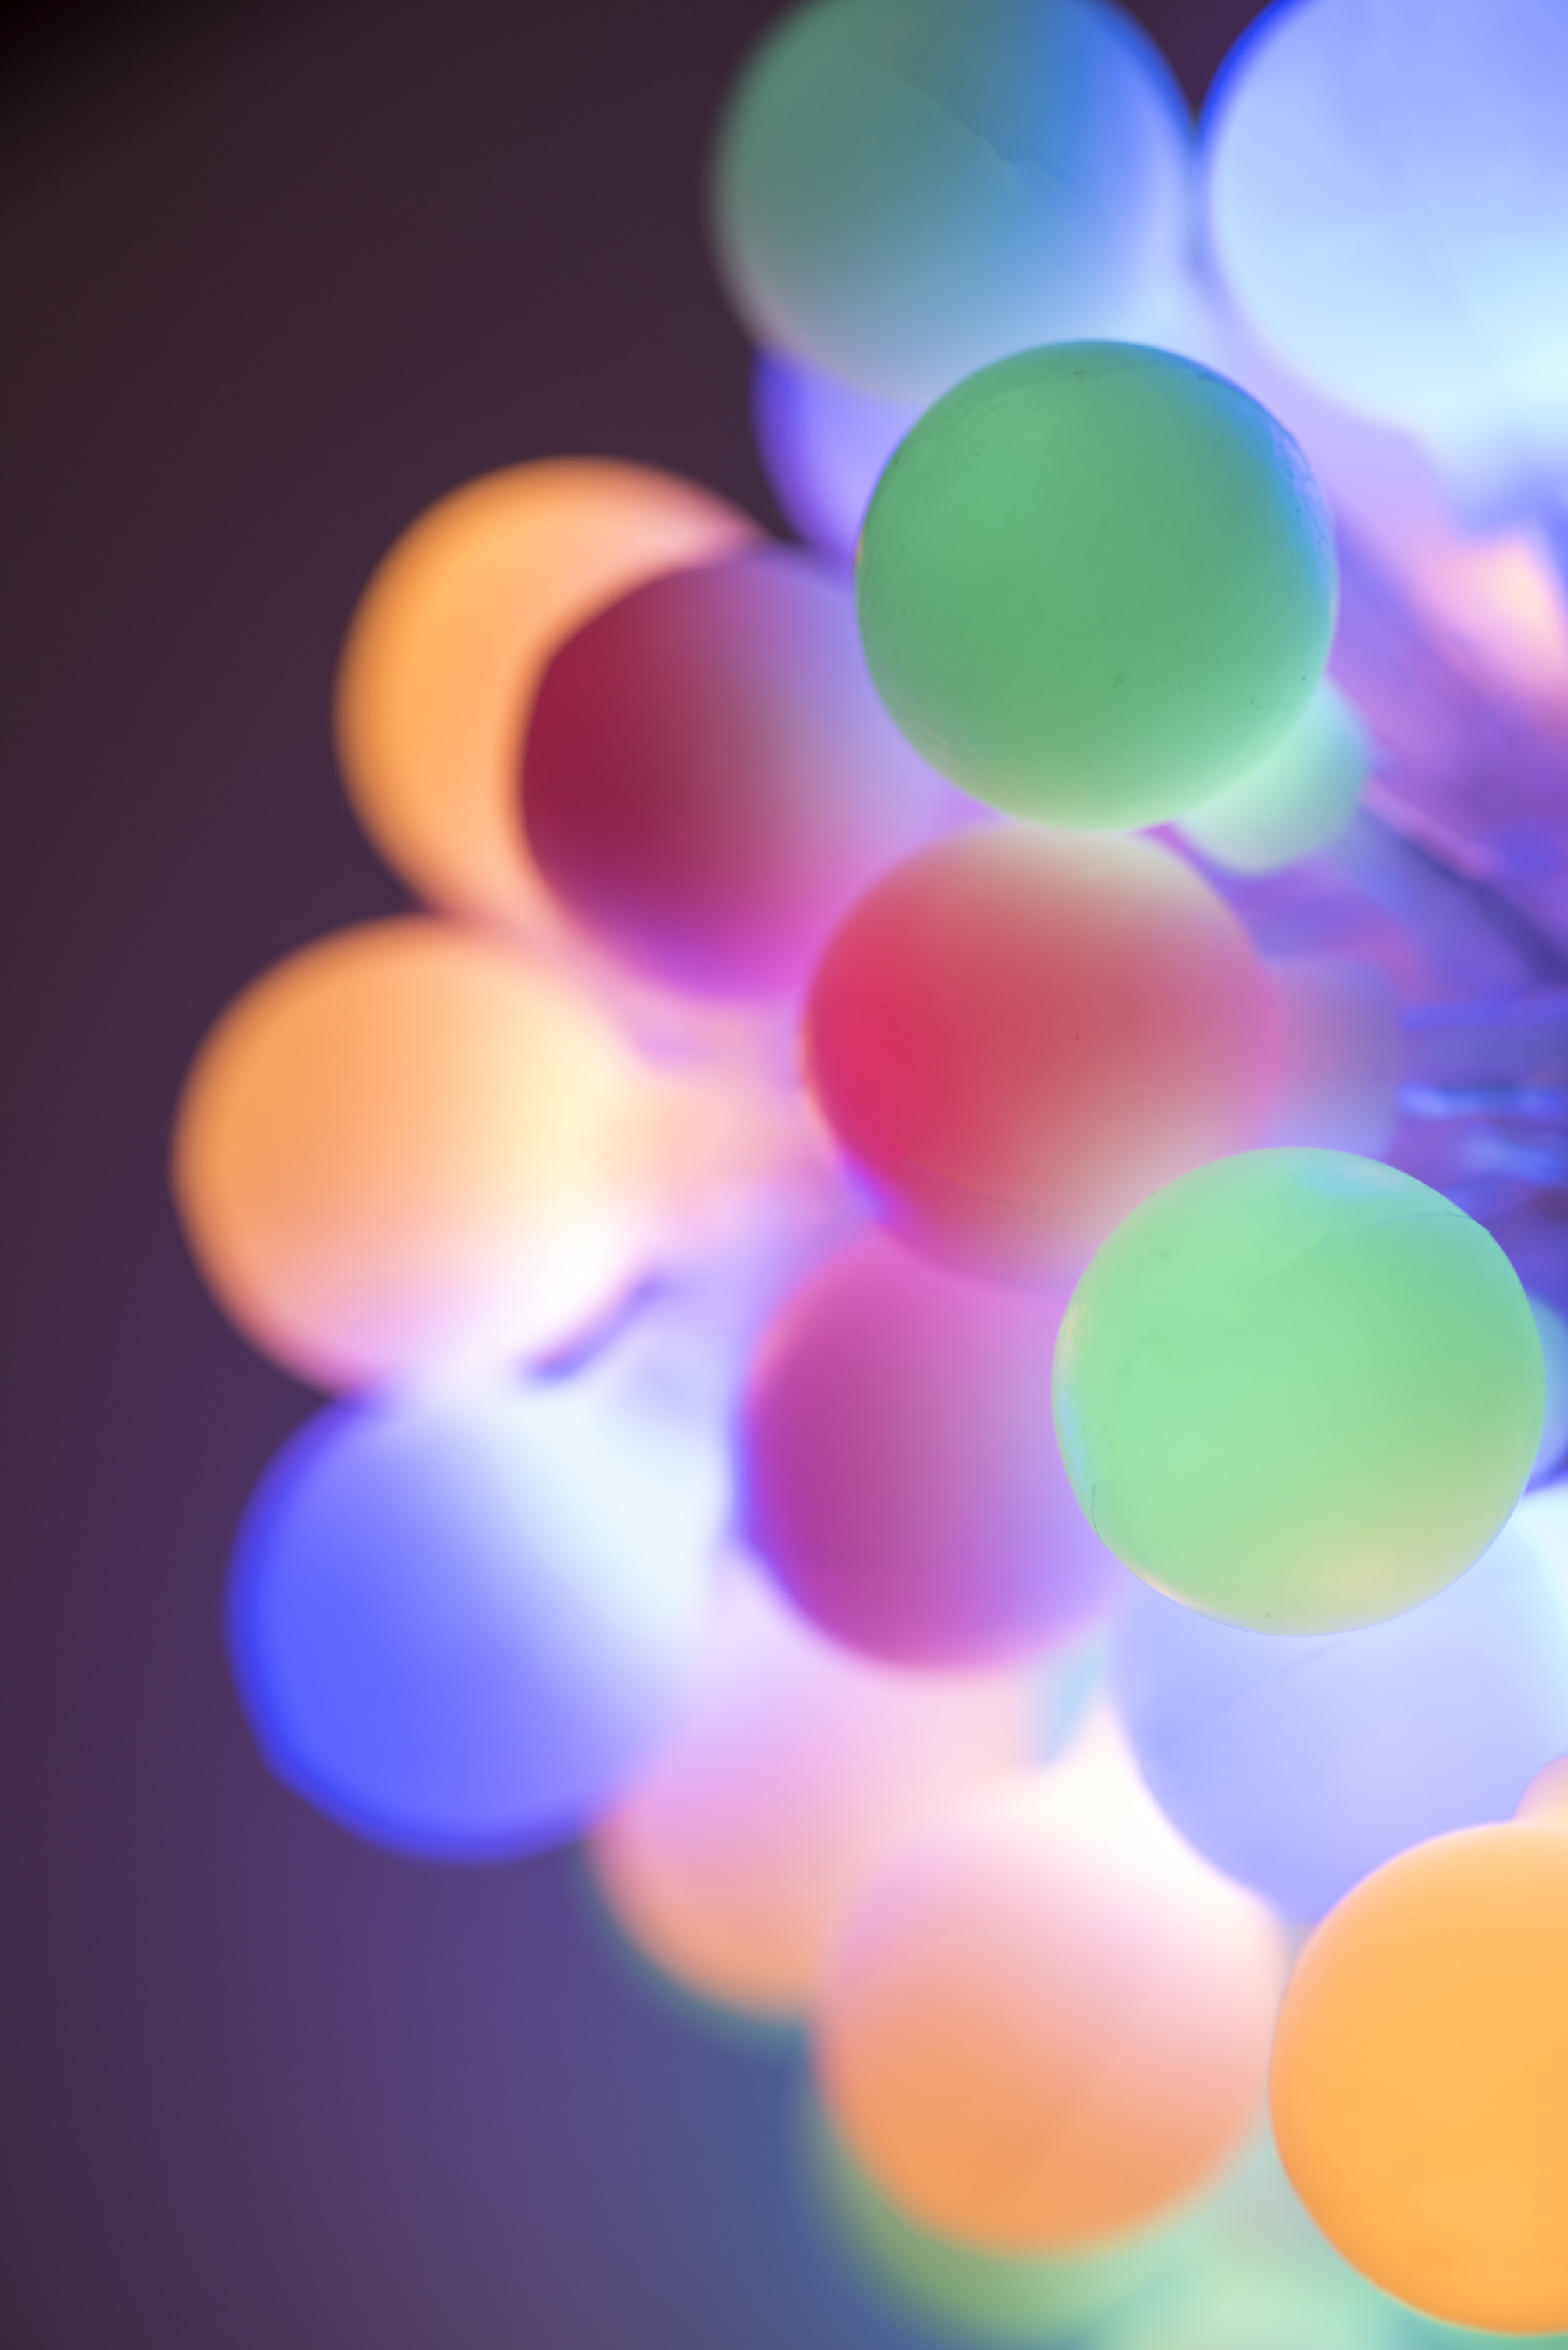 colorful bundle of glowing round christmas lights in pastel or muted coors with shallow dof in